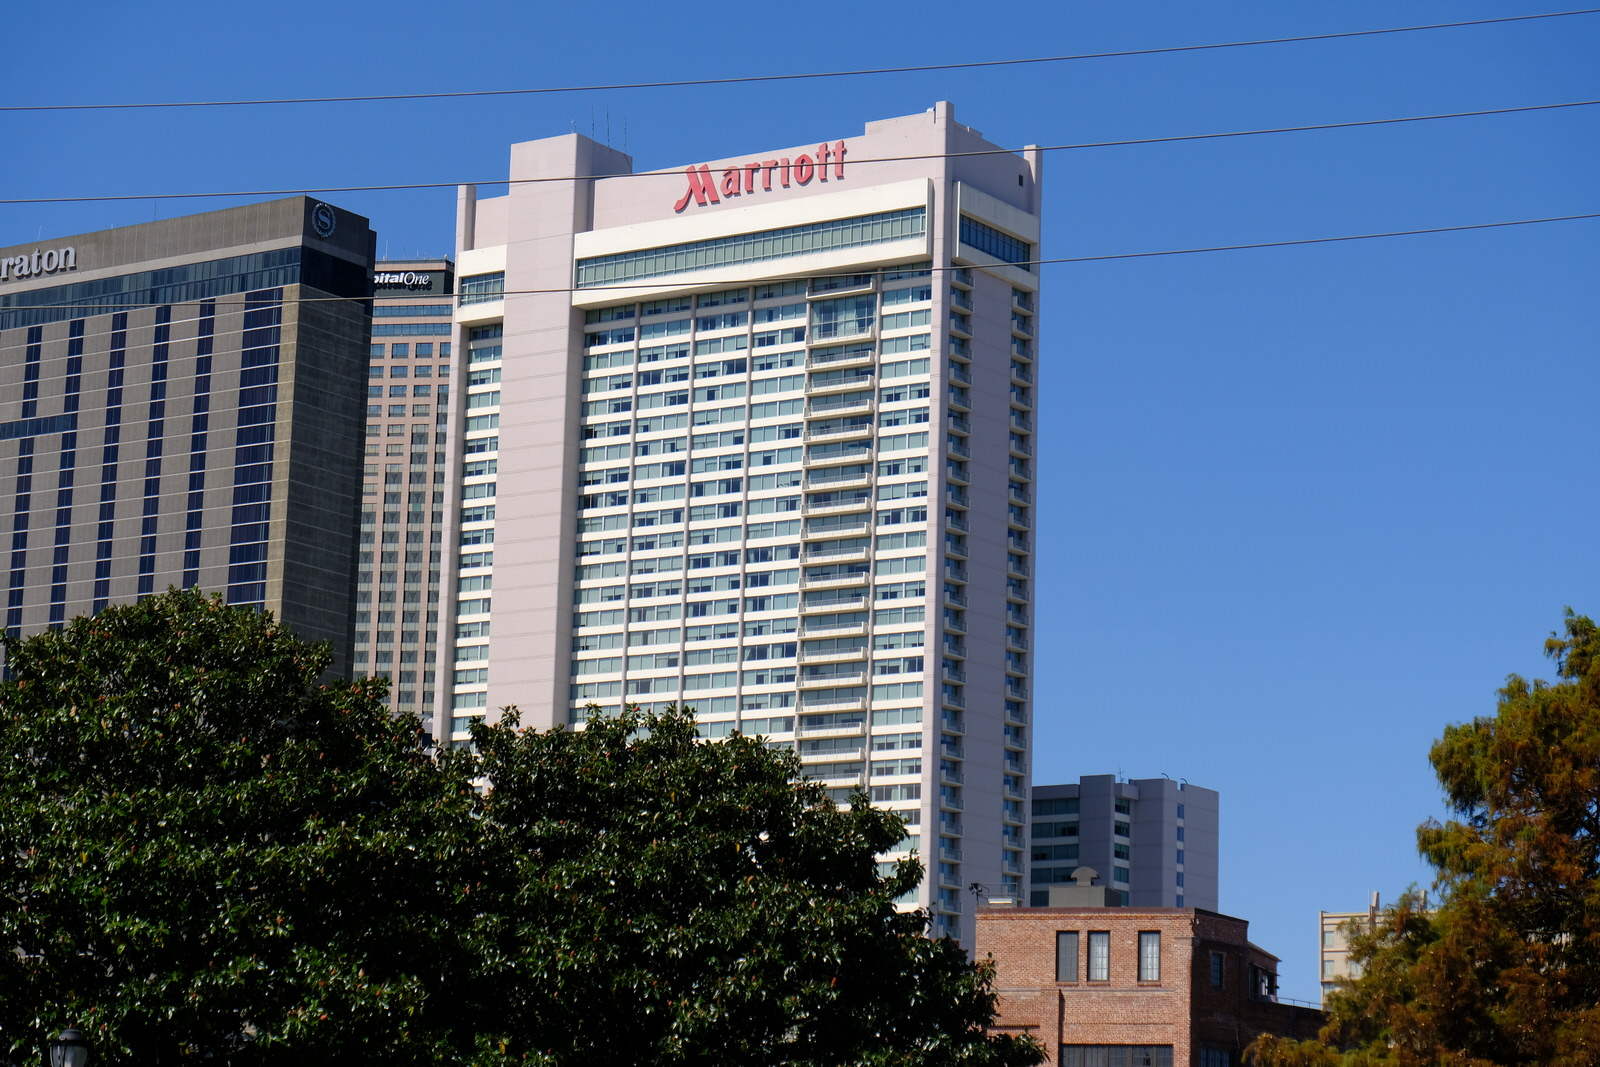 Marriott hotel in downtown New Orleans, Louisiana.